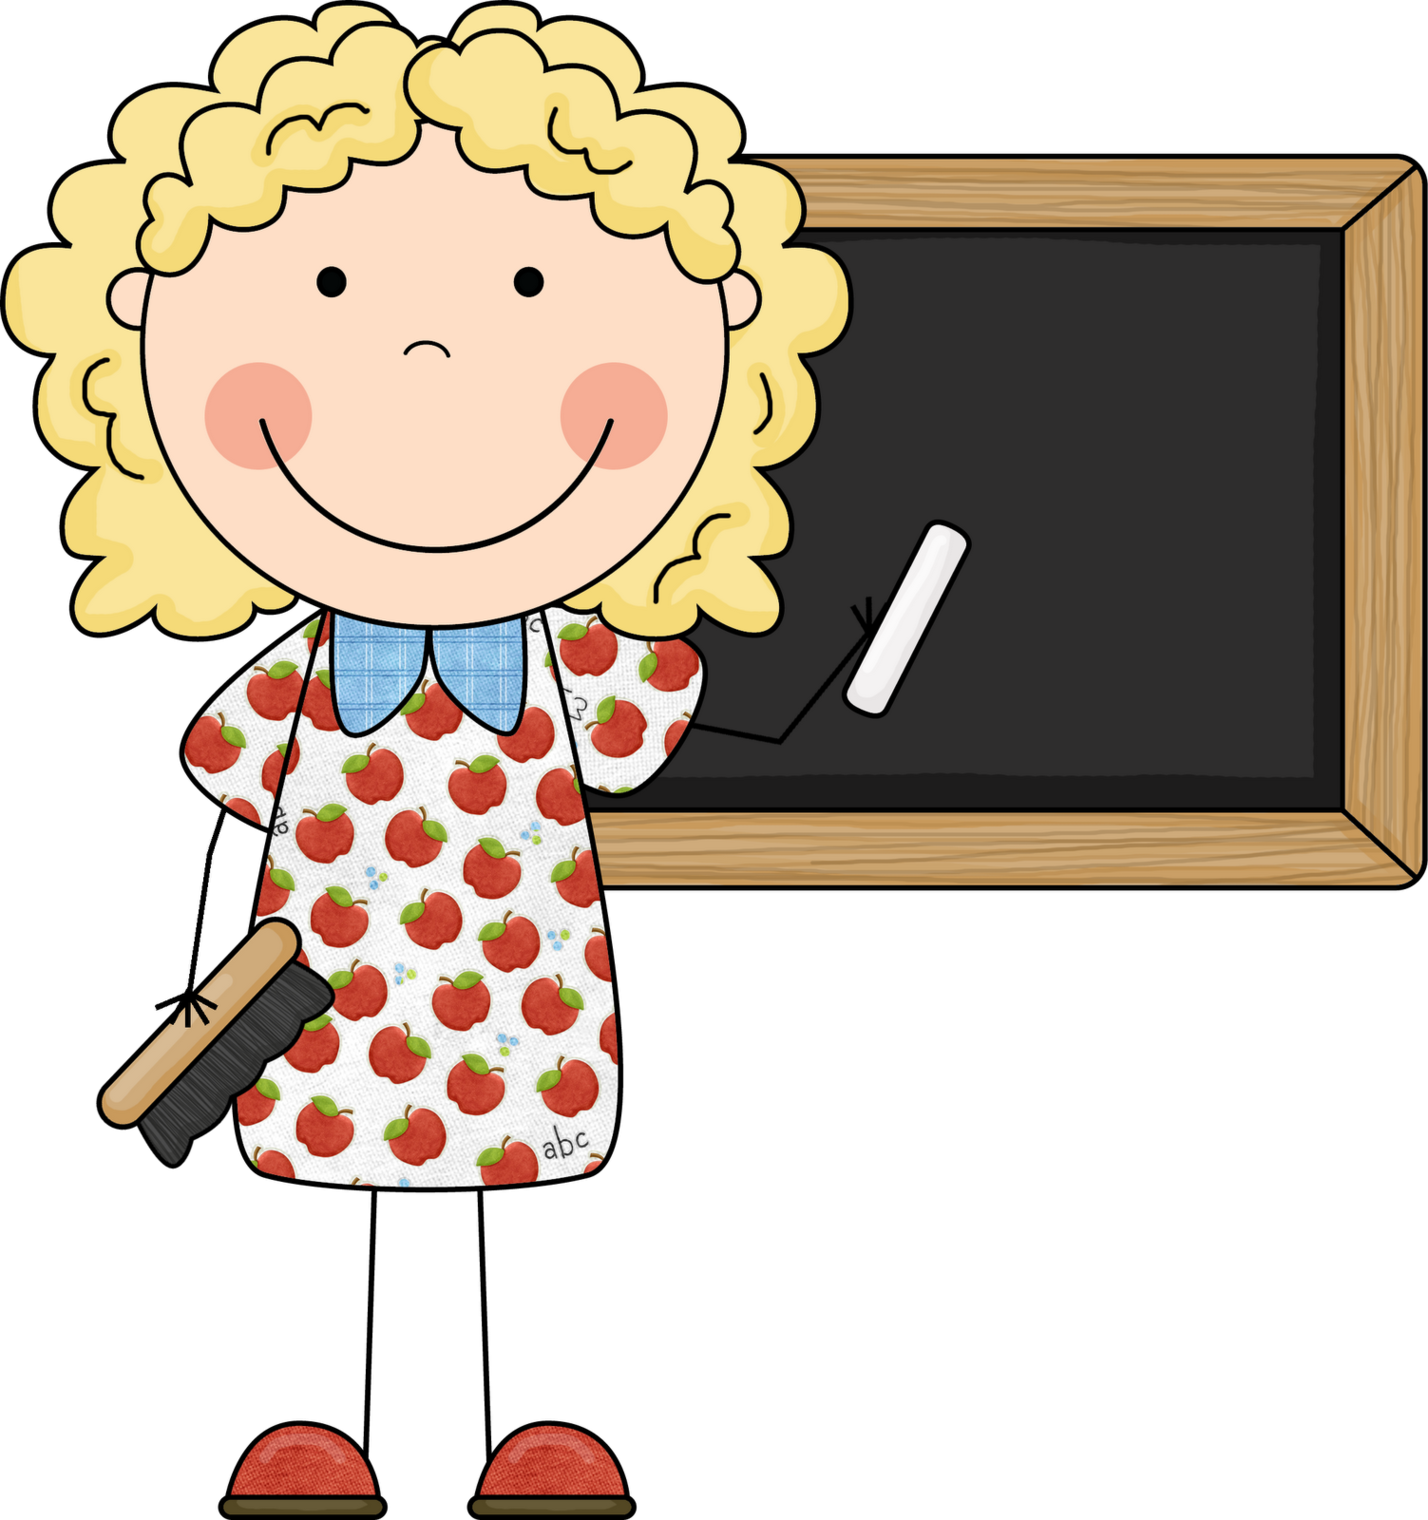 Clipart library kindergarten. Clip art images wikiclipart